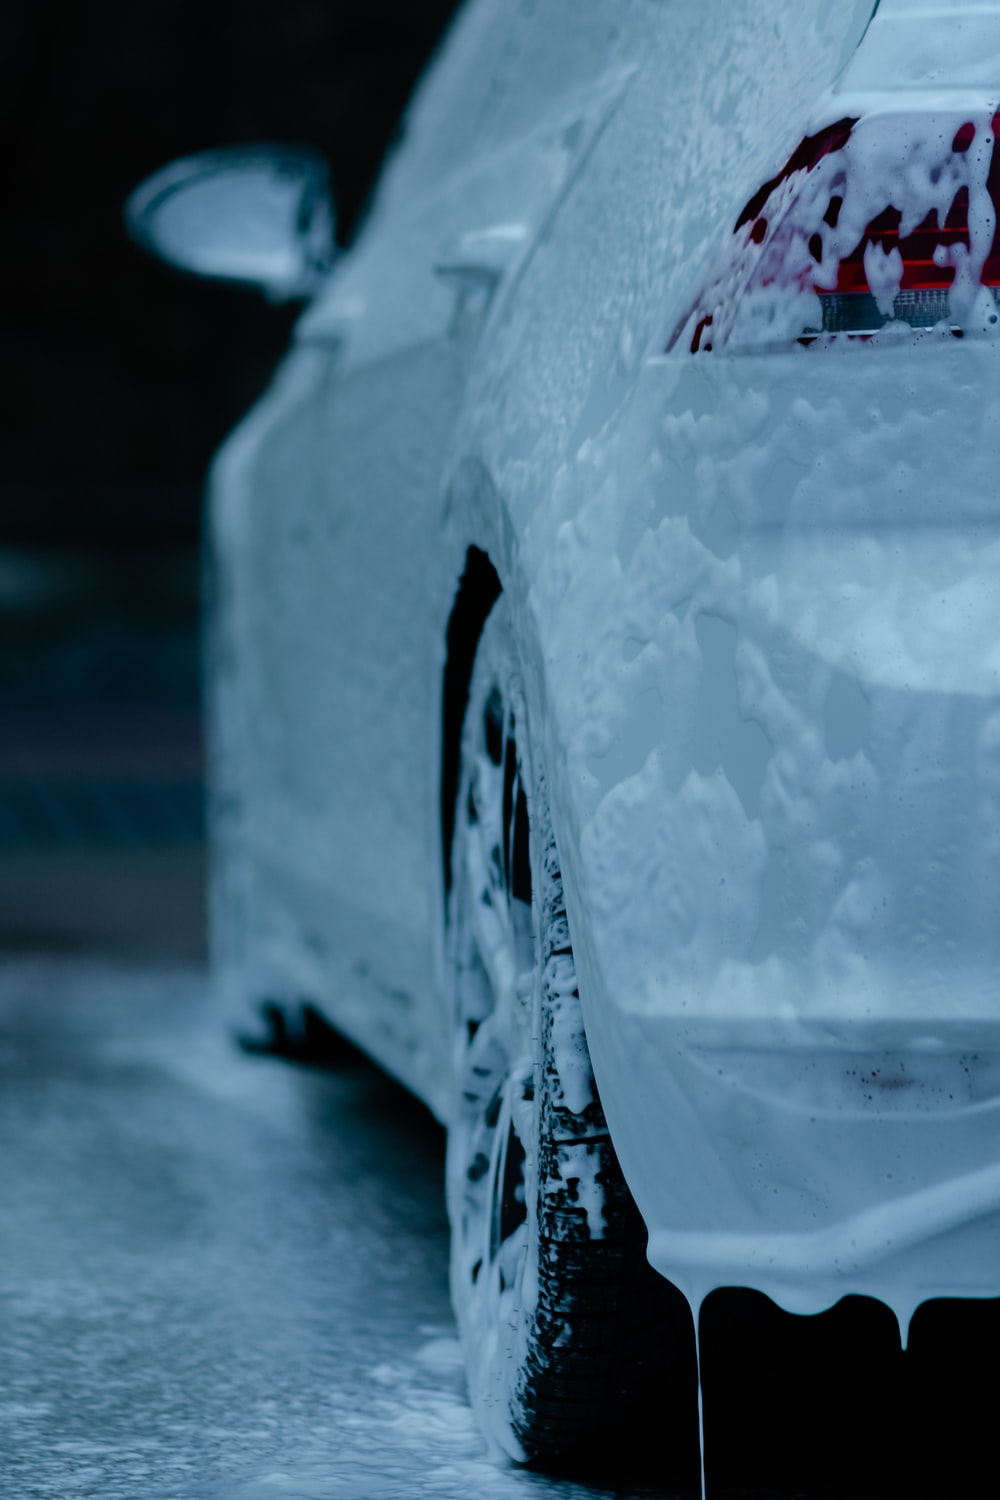 white car with water droplets